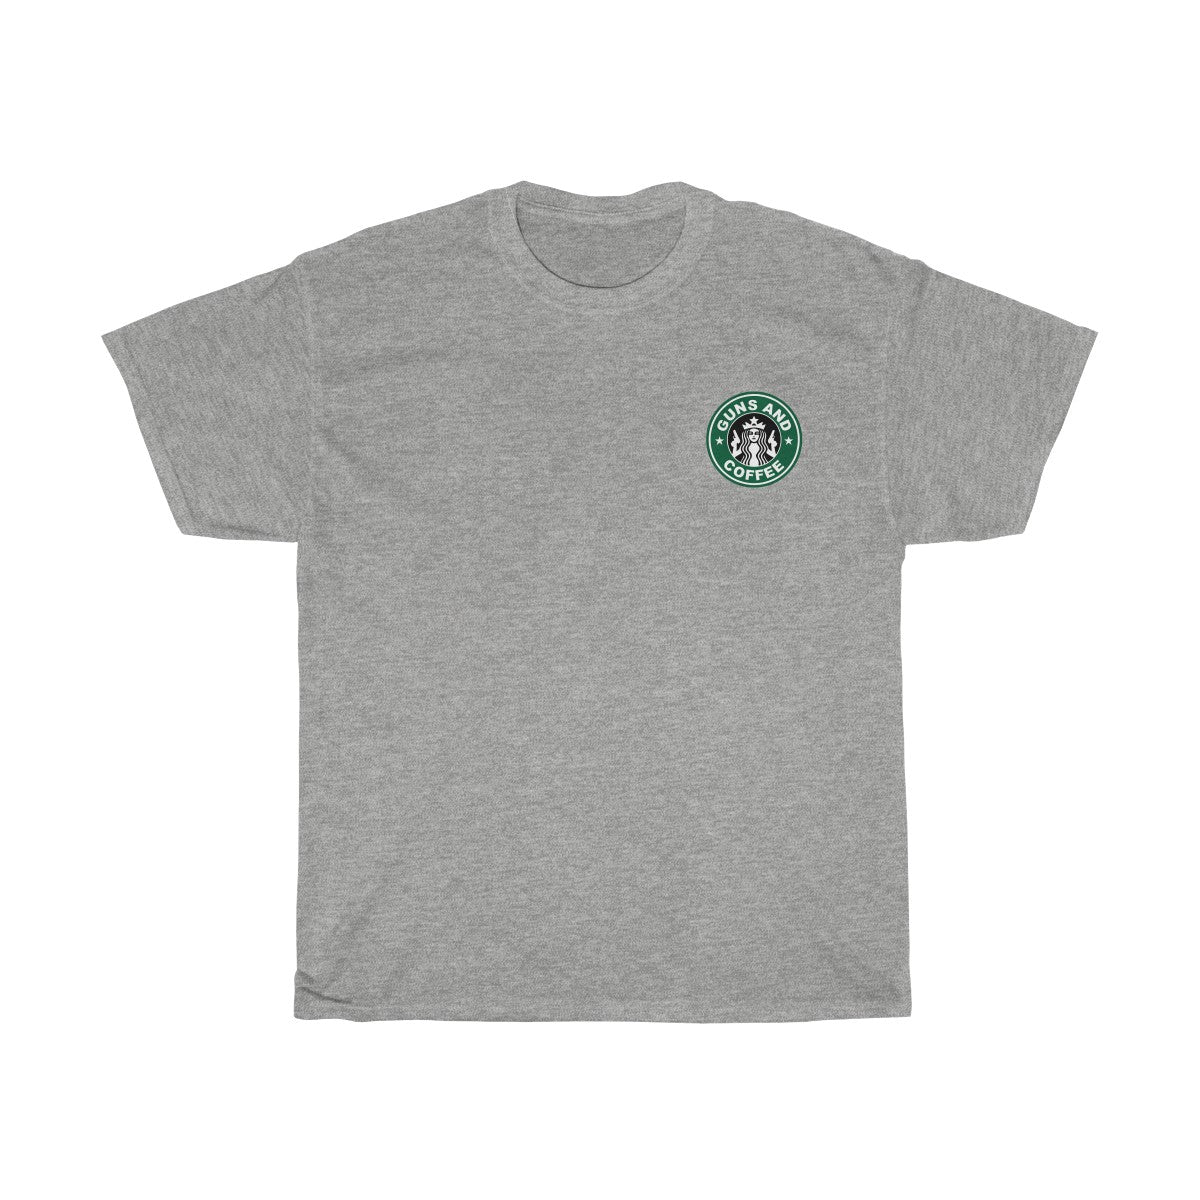 Guns & Coffee Tee